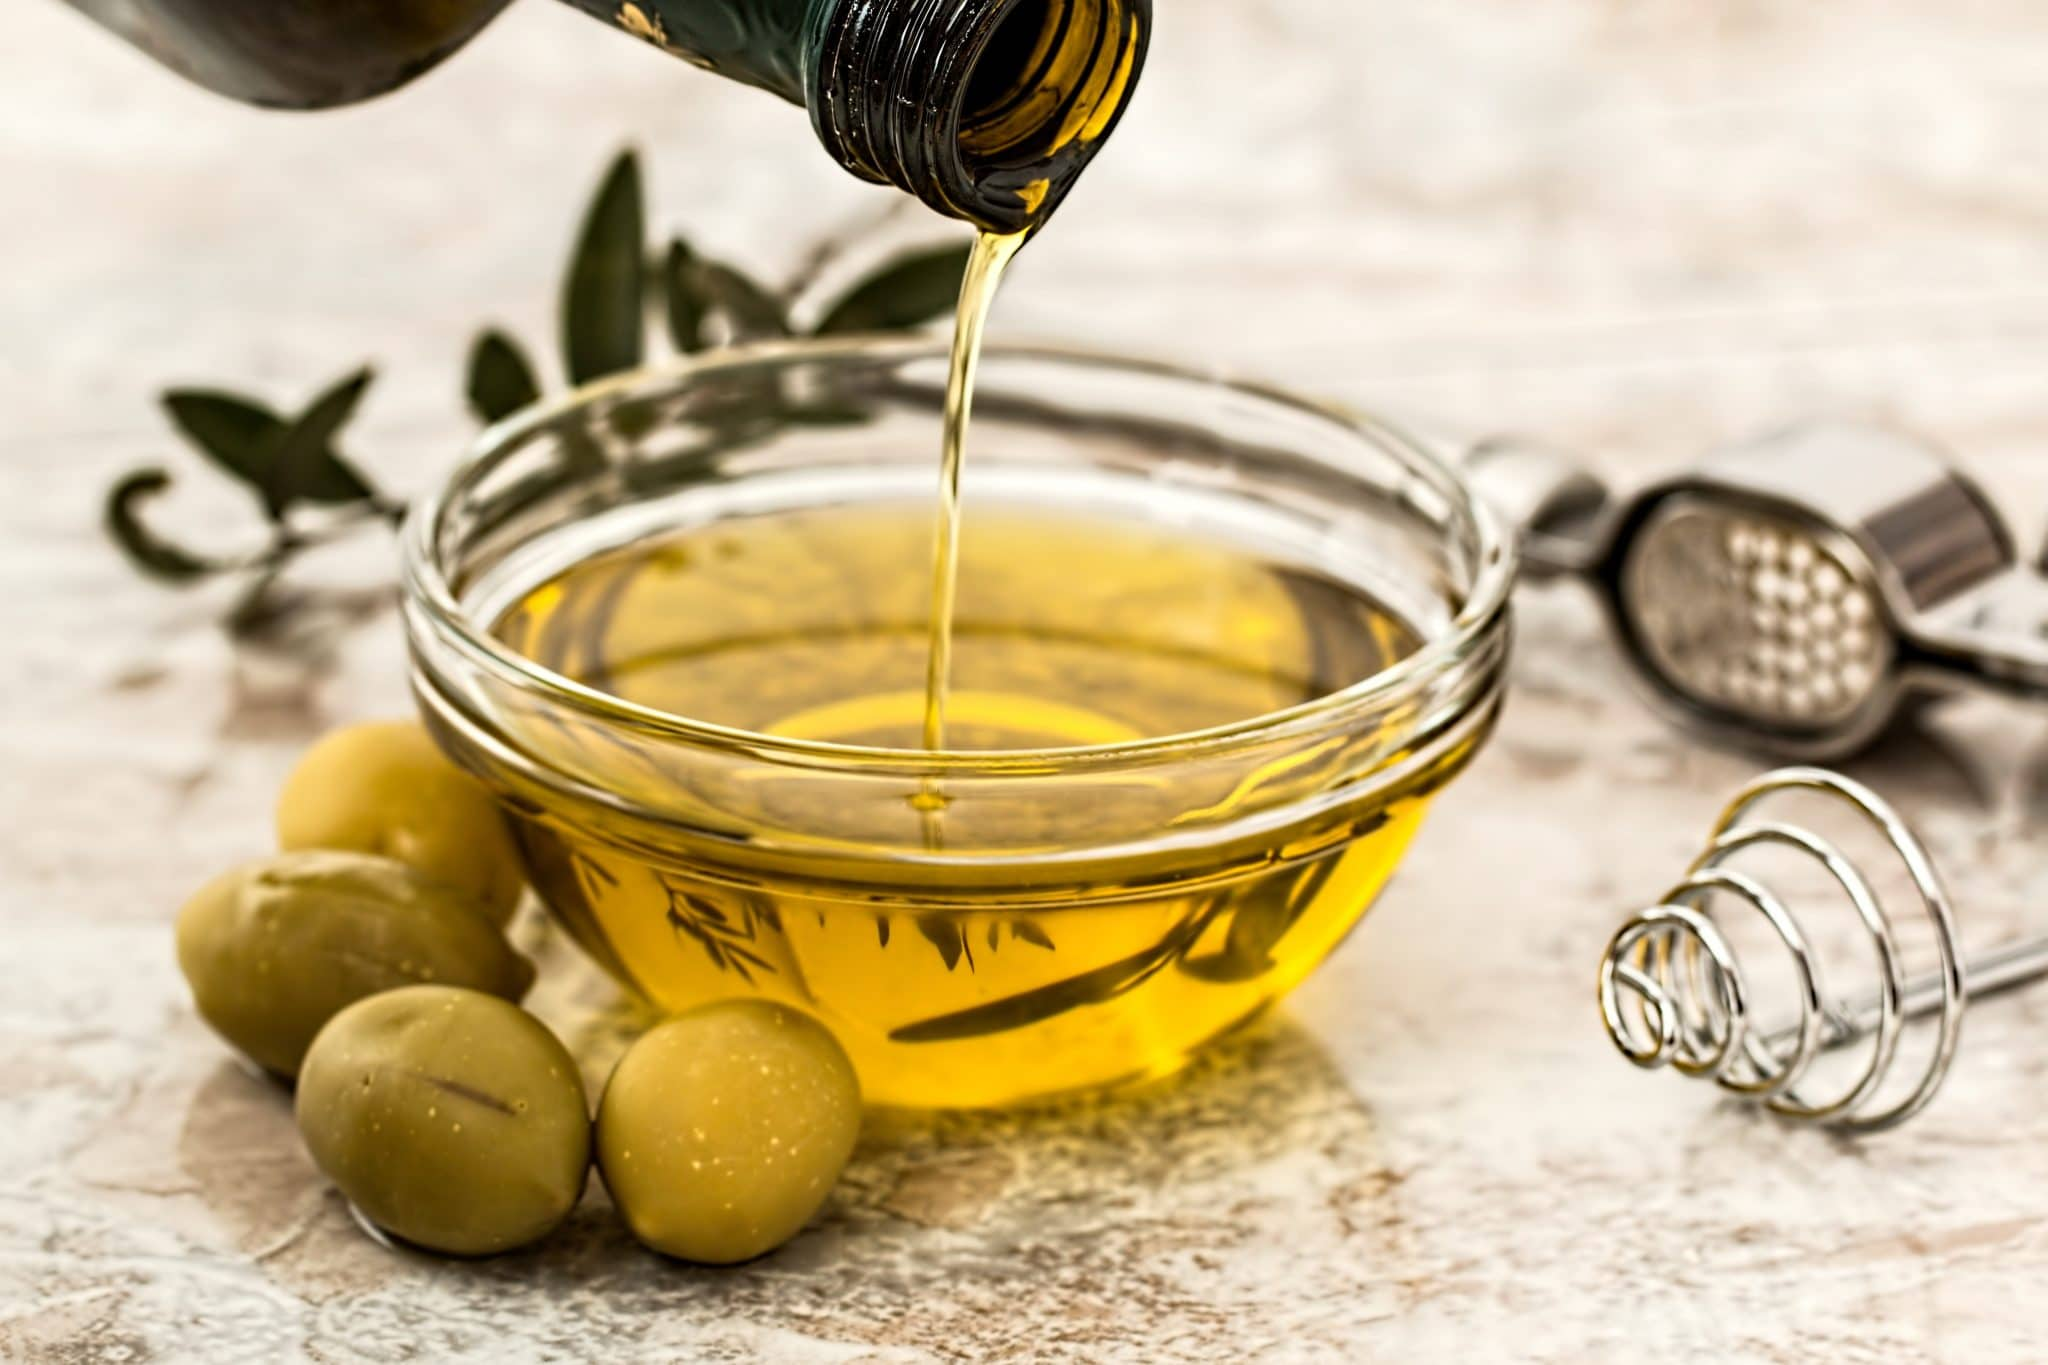 A picture of a bottle pouring olive oil into a bowl